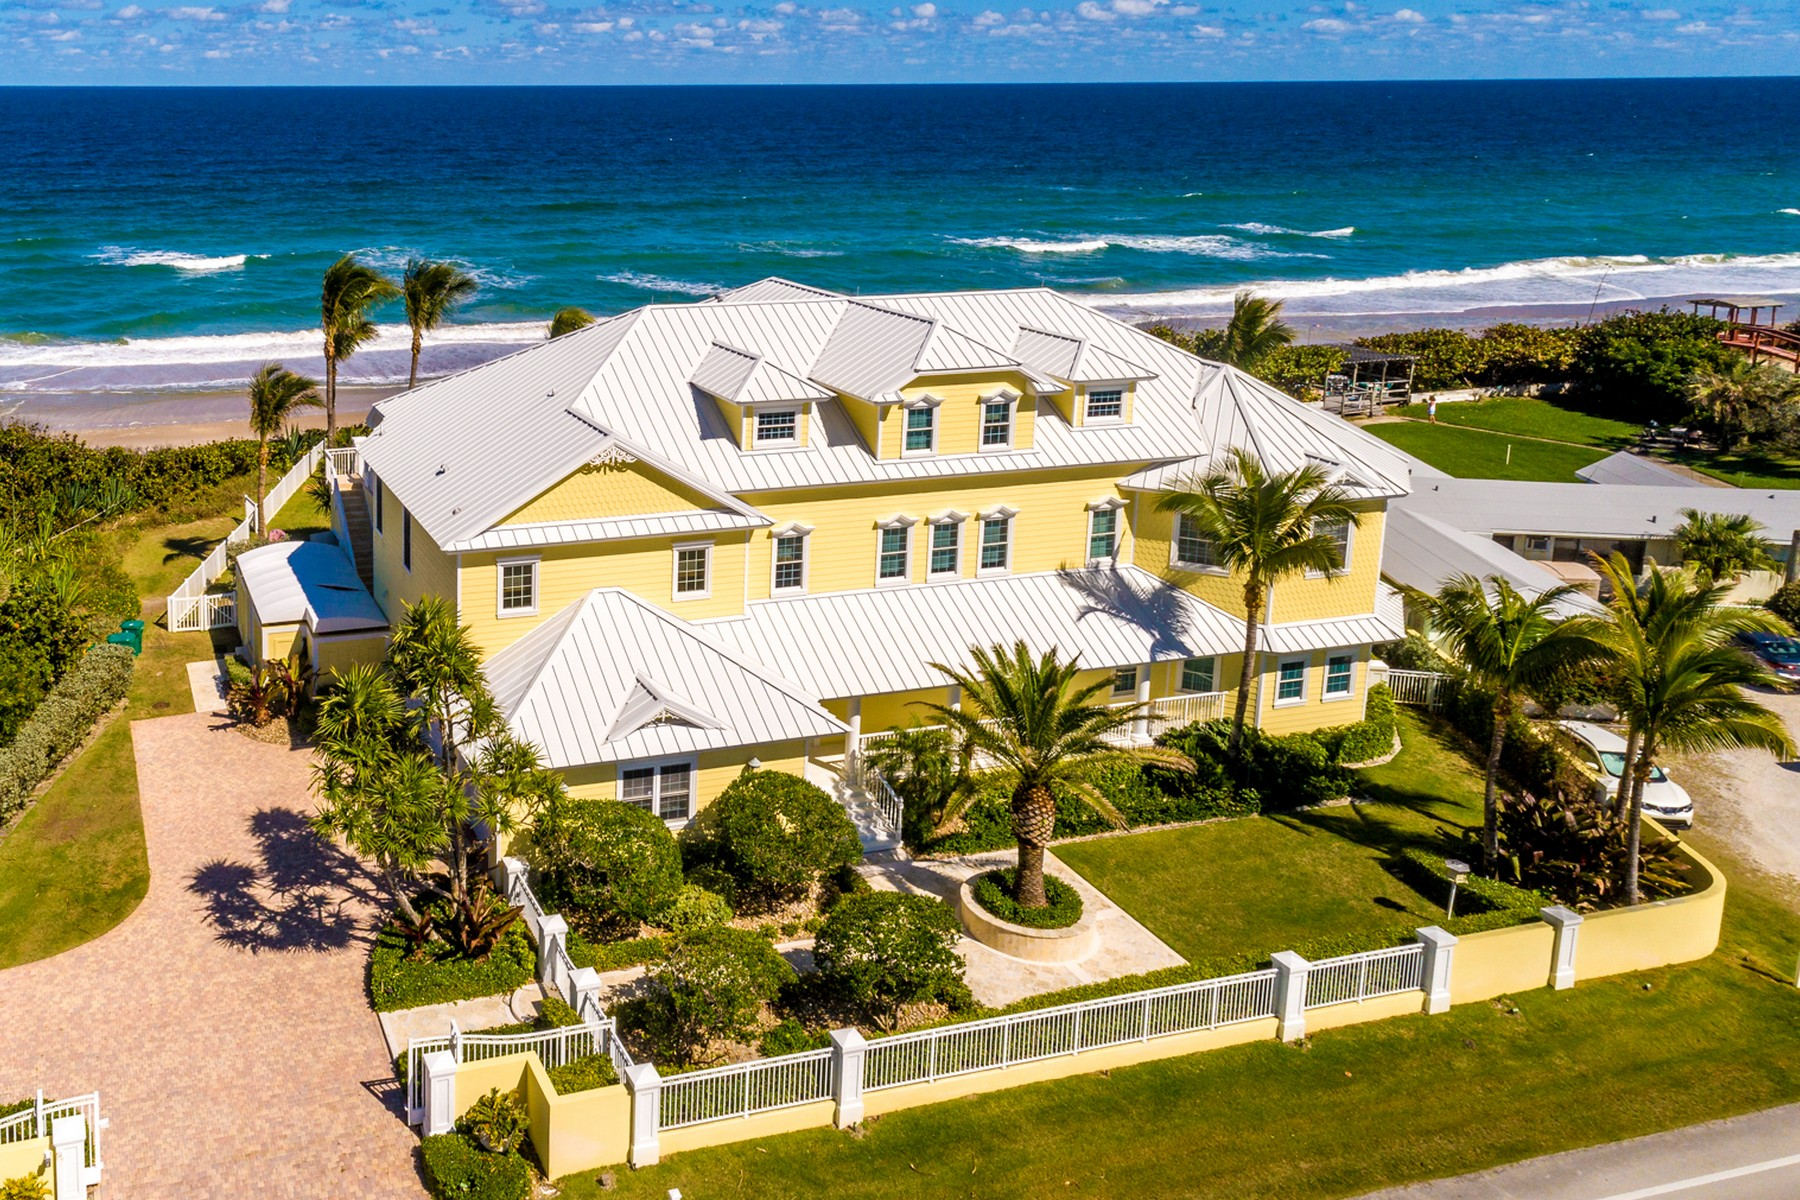 Single Family Homes для того Продажа на Gorgeous Tropically Landscaped Home with Endless Ocean Vistas 5045 S Highway A1A Melbourne Beach, Флорида 32951 Соединенные Штаты